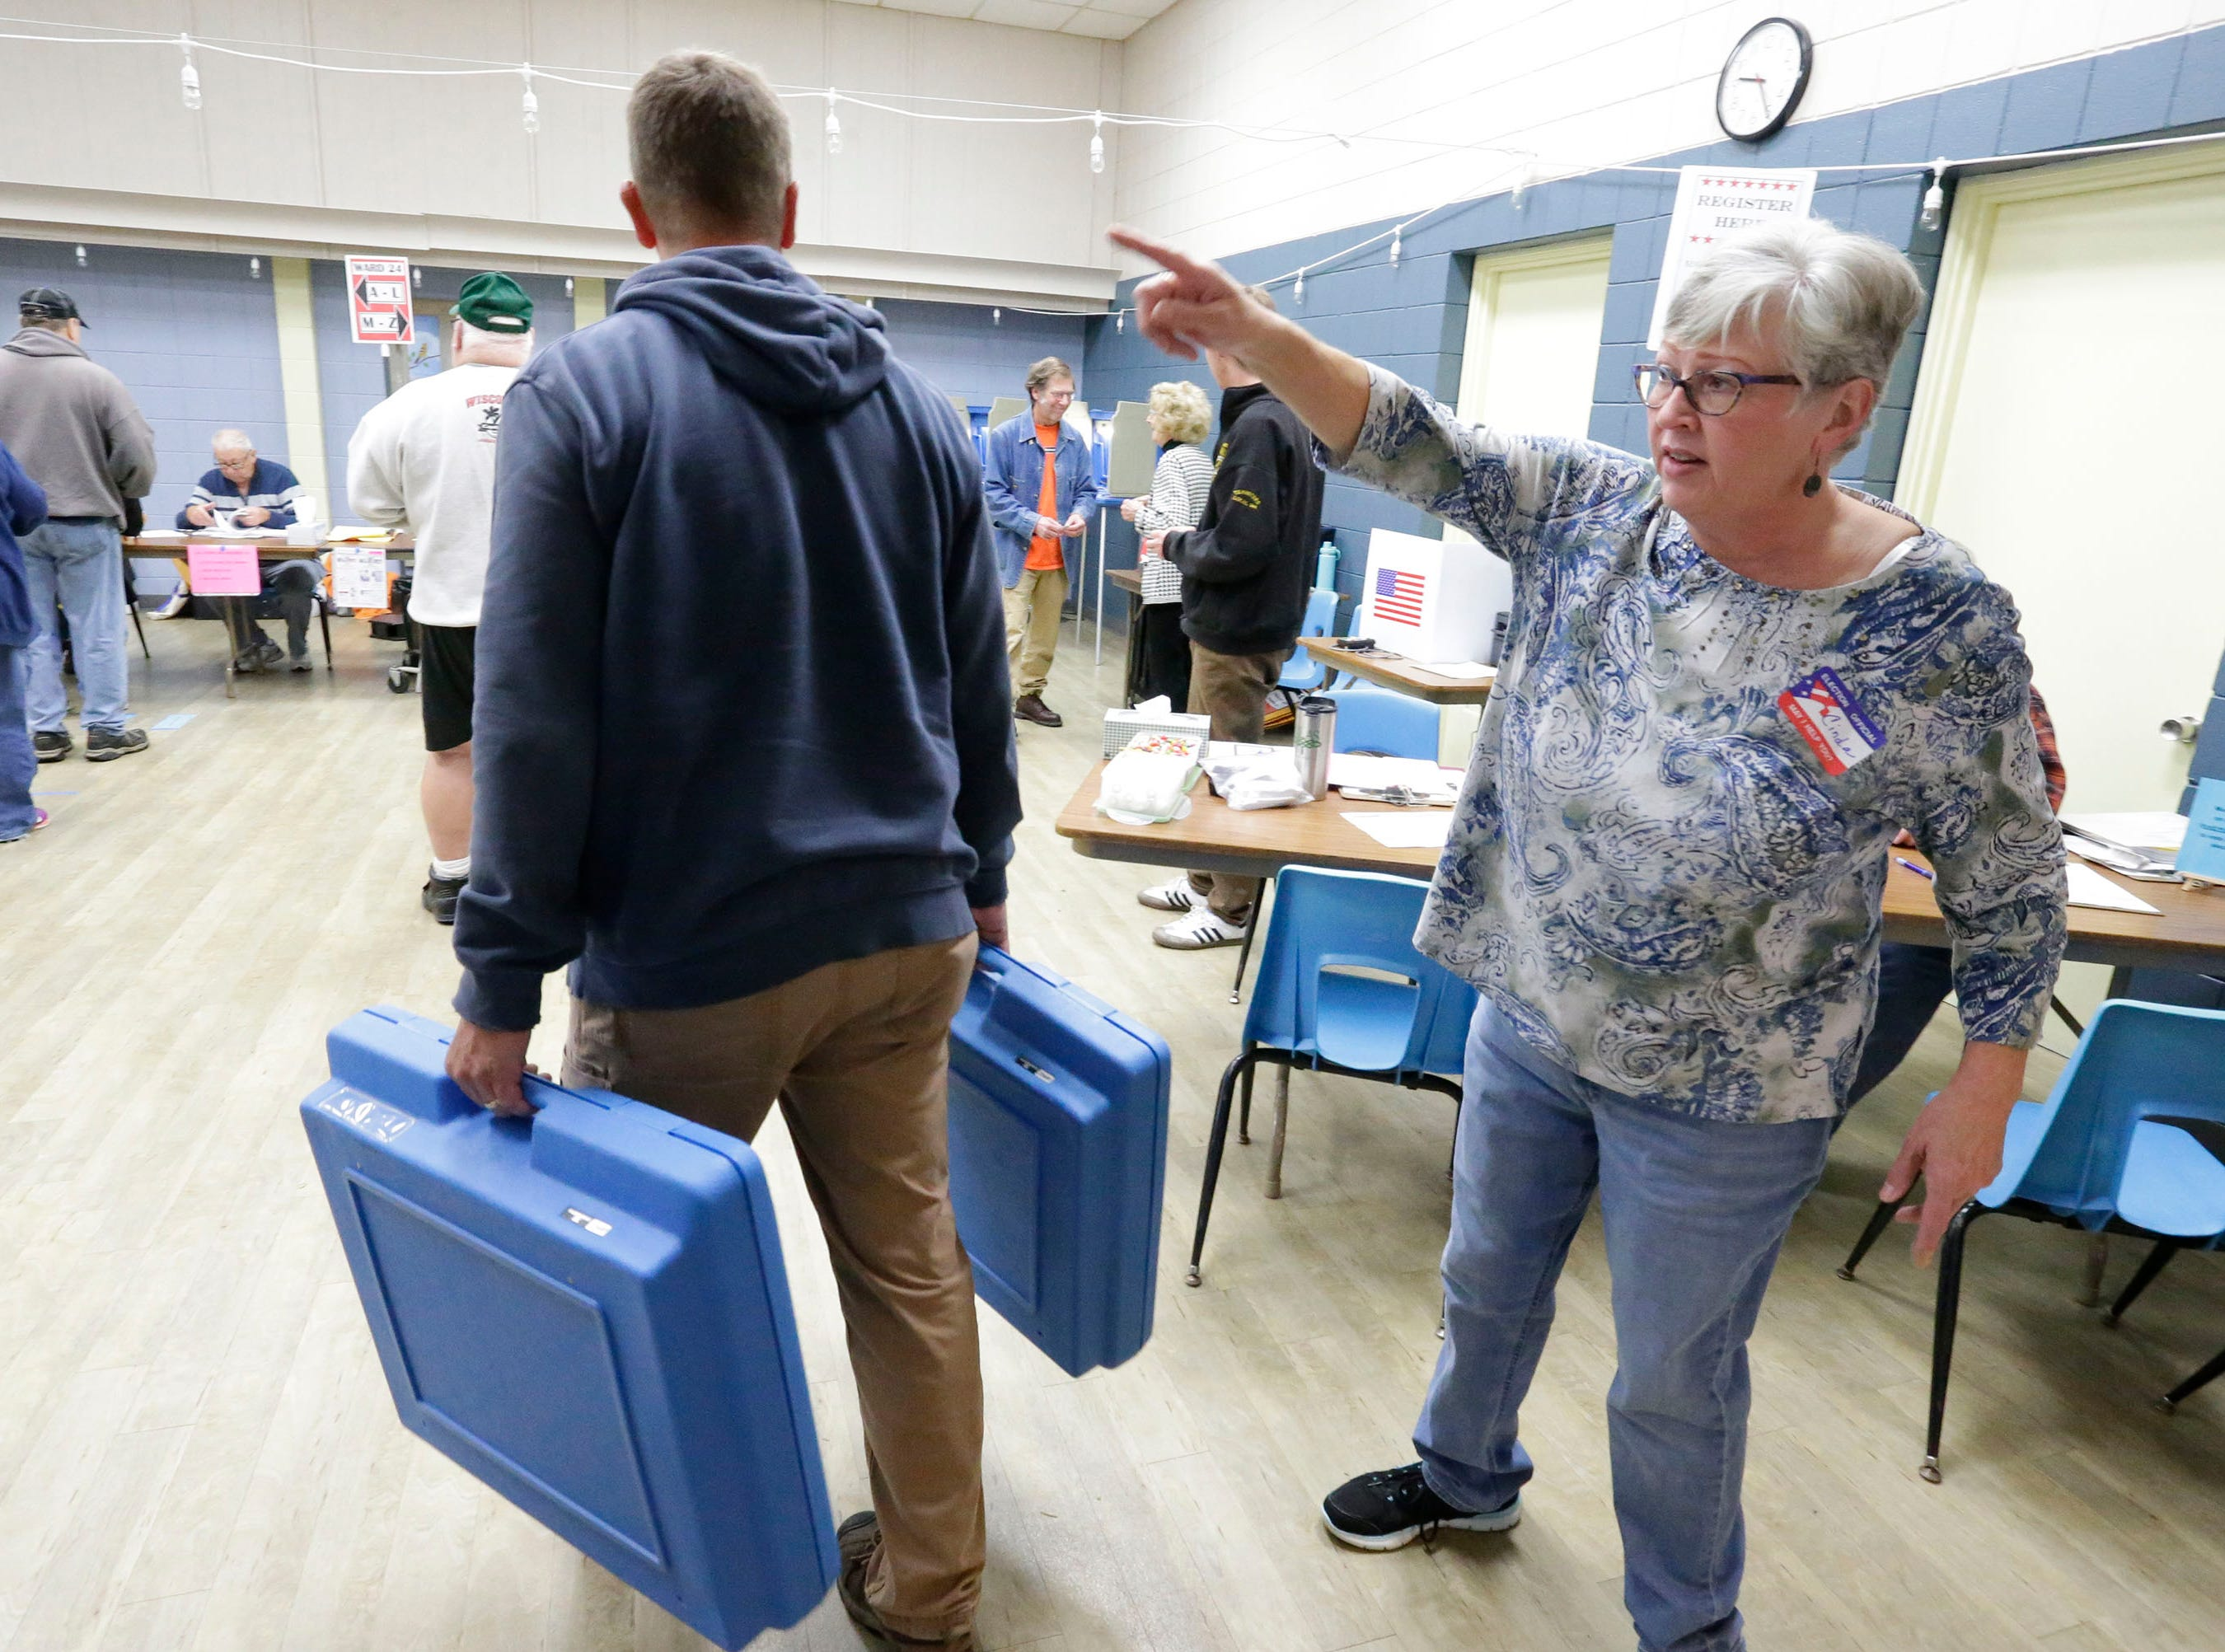 Poll worker Cinda Langhoff, right, directs a city employee where to set up additional polling stations at the Senior Activity Center, Tuesday, November 6, 2018, in Sheboygan, Wis.